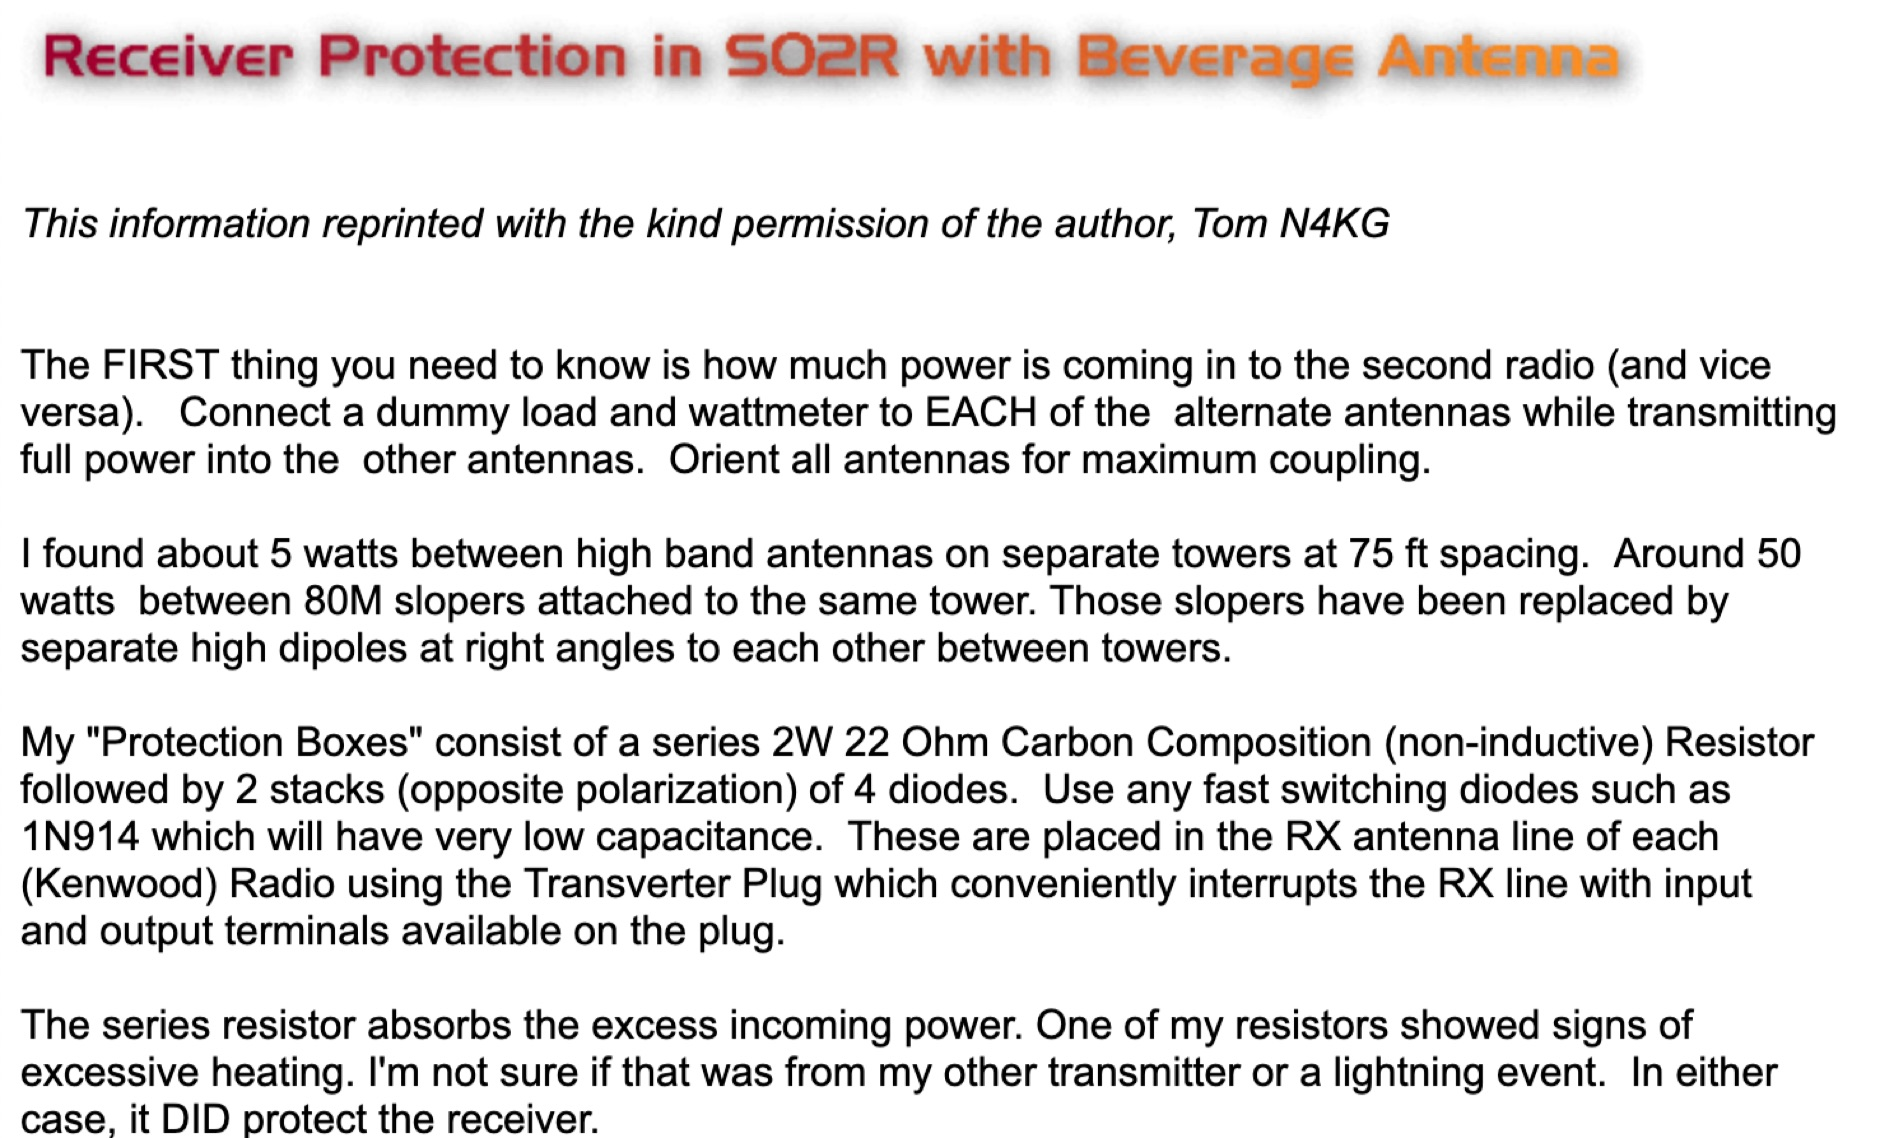 Receiver Protection in SO2R and Beverage Antennas